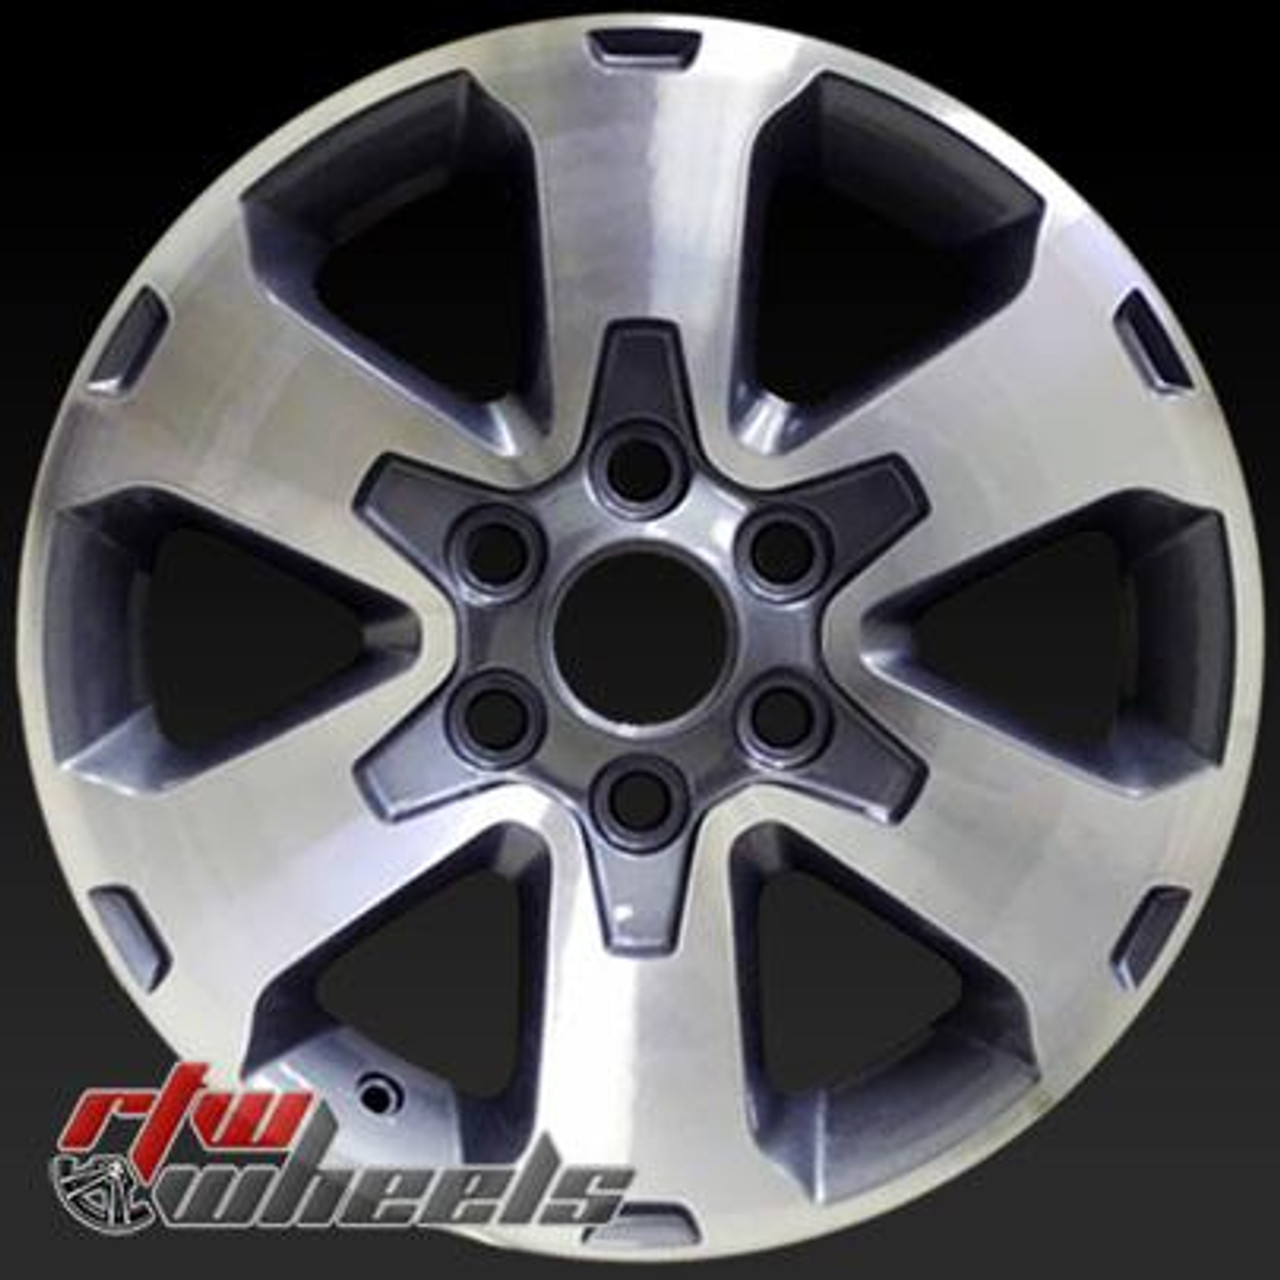 Ford F150 Factory Rims For Sale >> Ford F150 Wheels For Sale 2010 2014 18 Machined Rims 3832